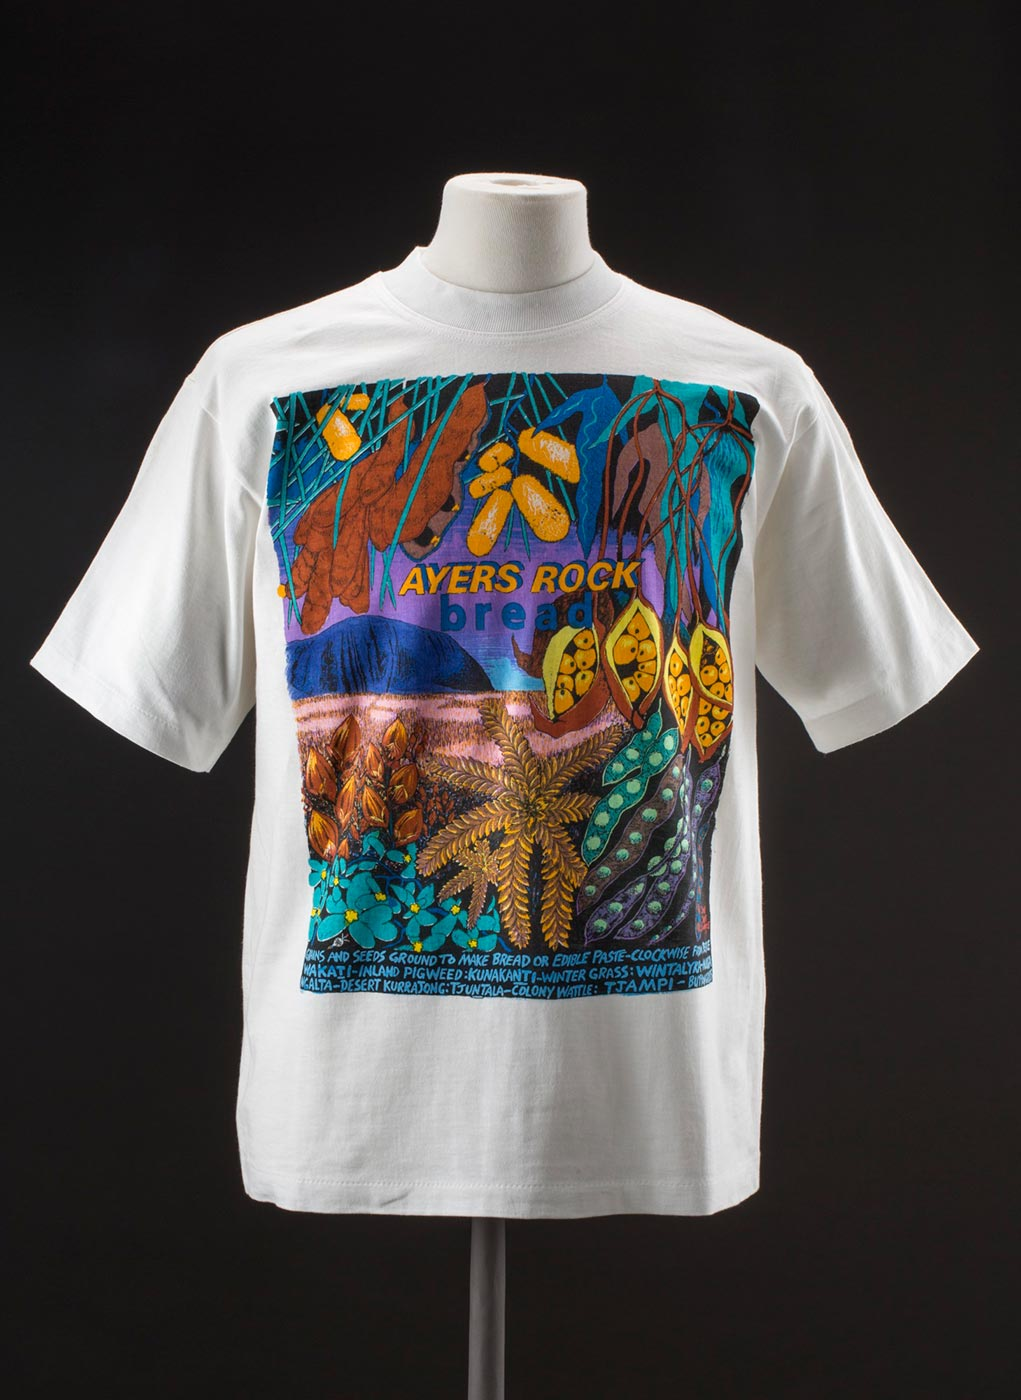 Depicted on the T-shirt is a brightly coloured landscape featuring native plants and seeds in foreground, Uluru / Ayers Rock in background and text above